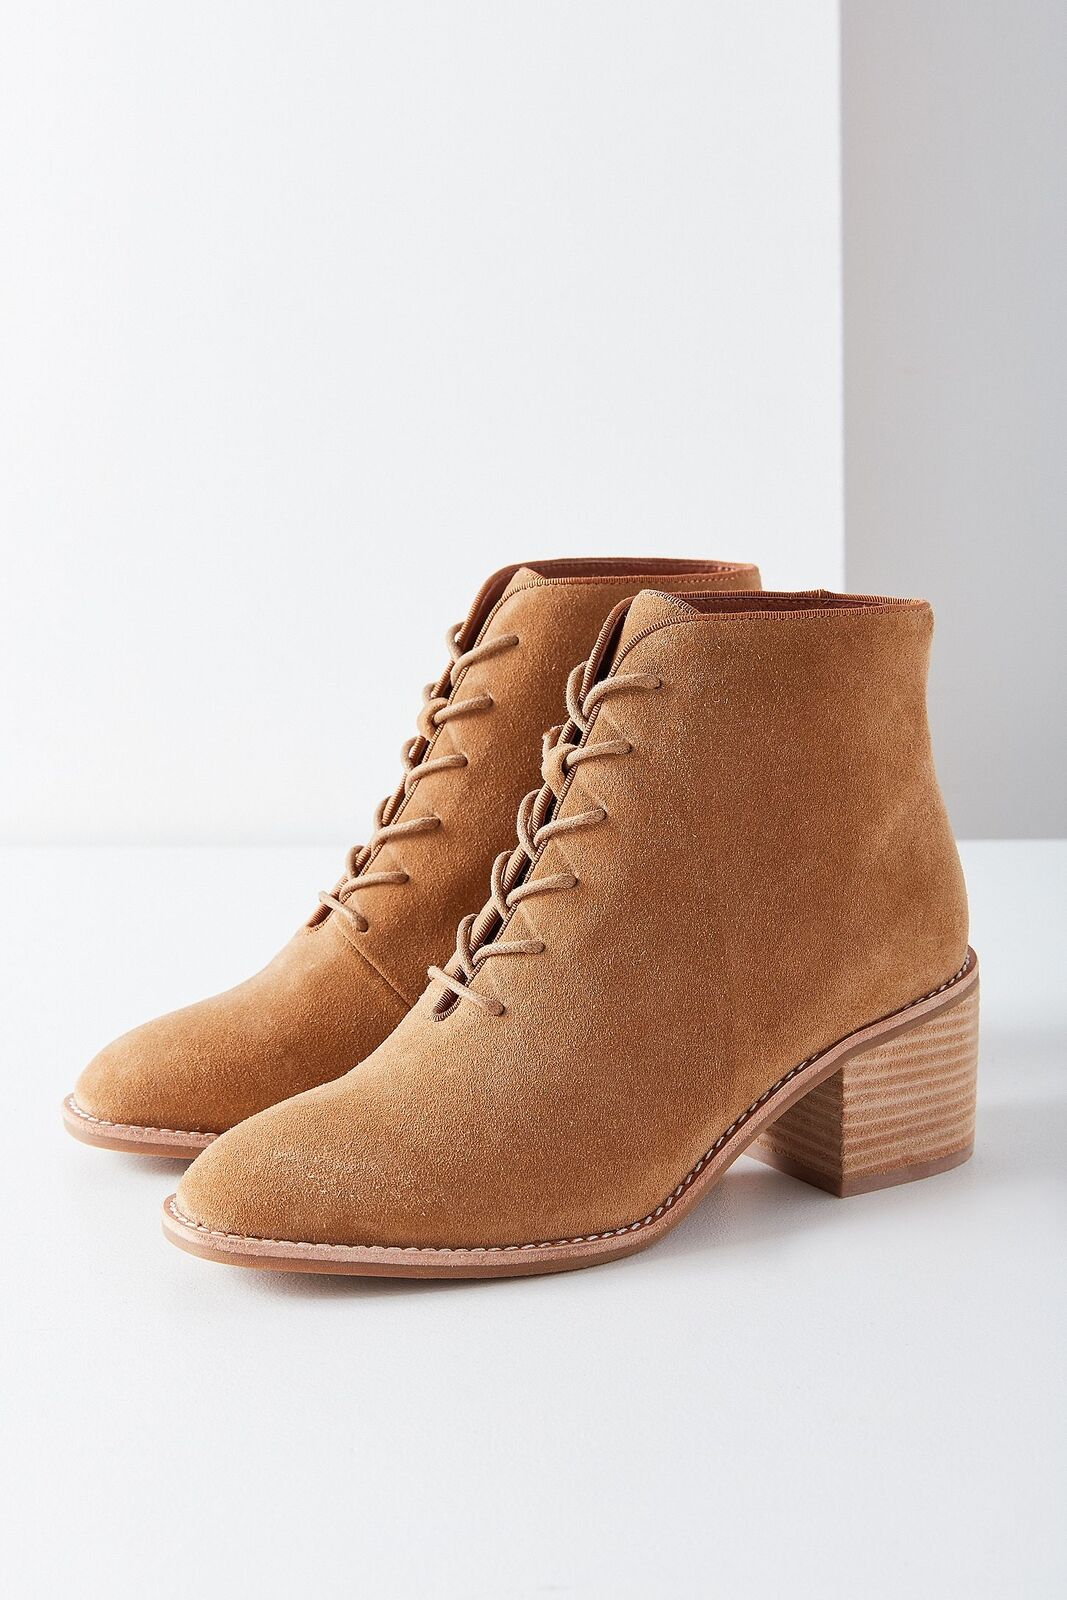 outlet online NEW Jeffrey Campbell Talcott Talcott Talcott Lace Up Ankle avvio Dimensione 8 MSRP   179  compra meglio